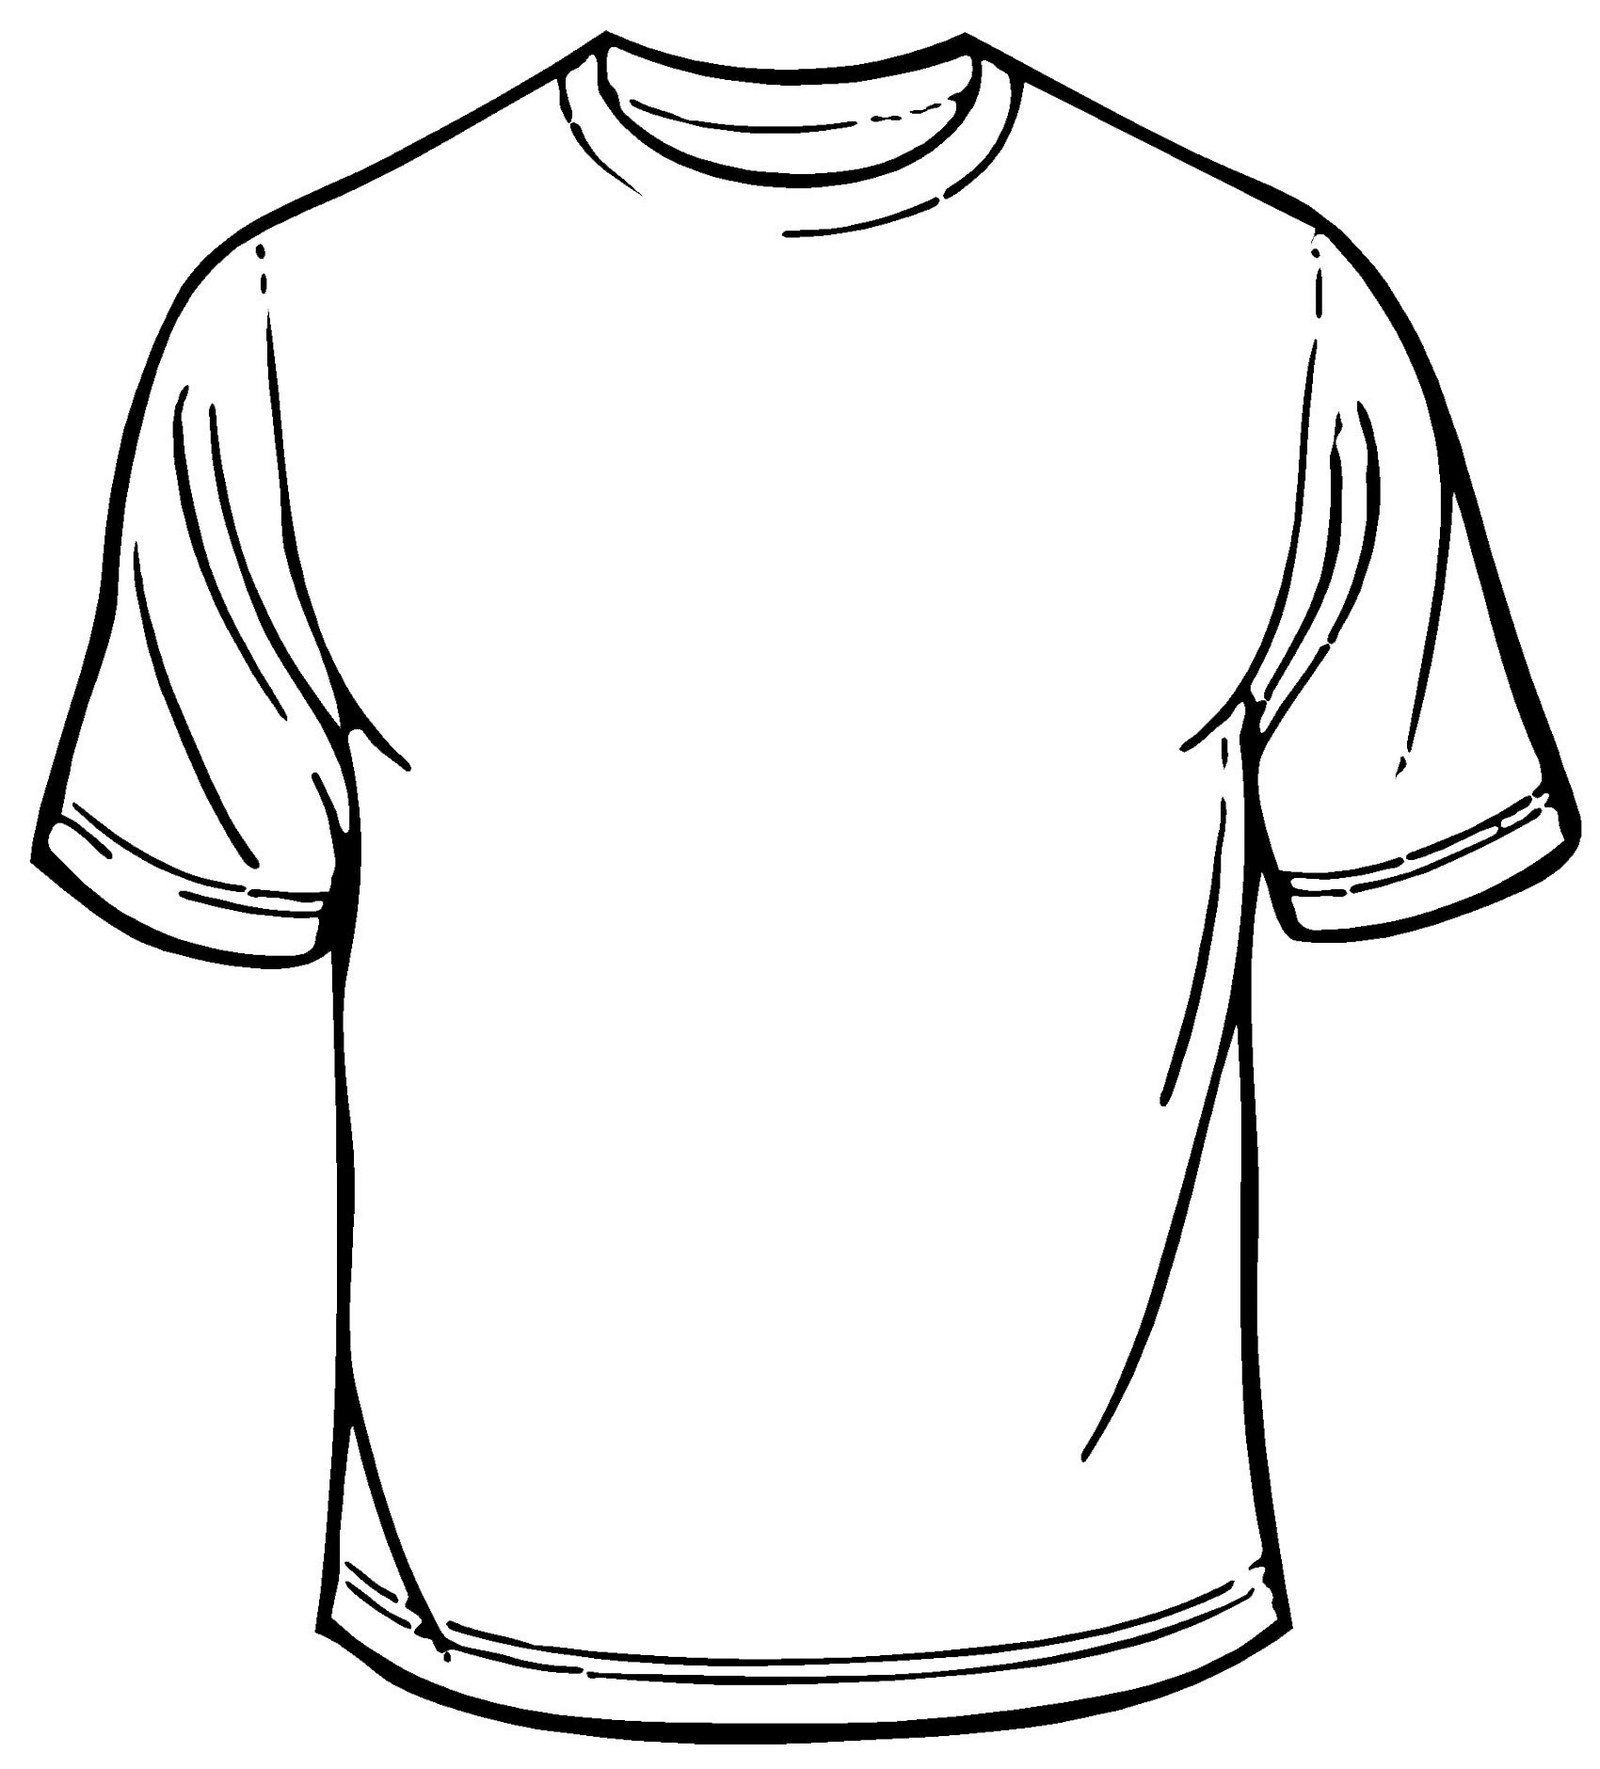 blank t shirt coloring sheet printable | Kaos, Desain